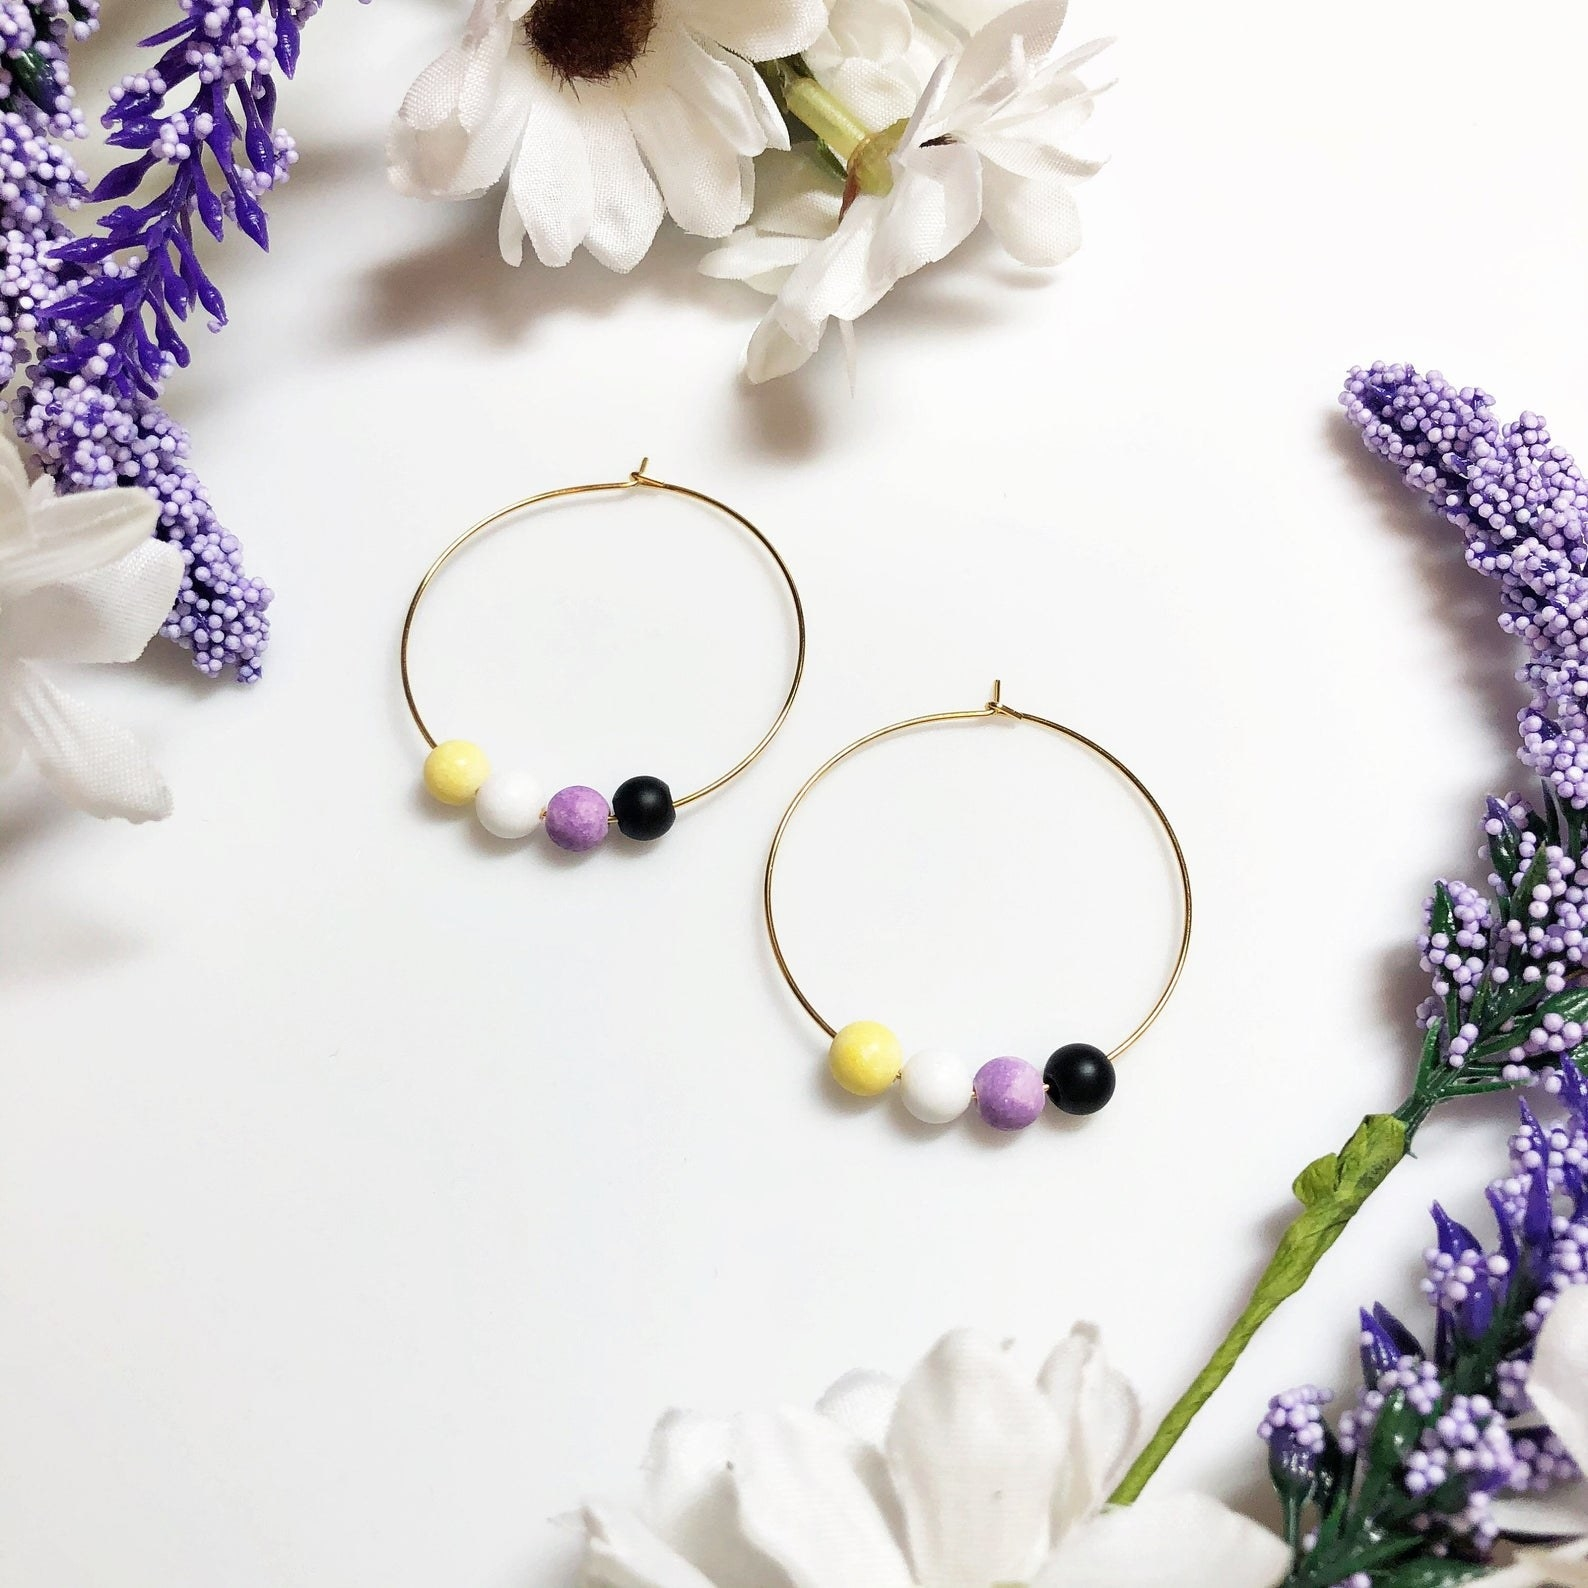 Two thin gold hoops with four small beads on them in yellow, white, purple, and black